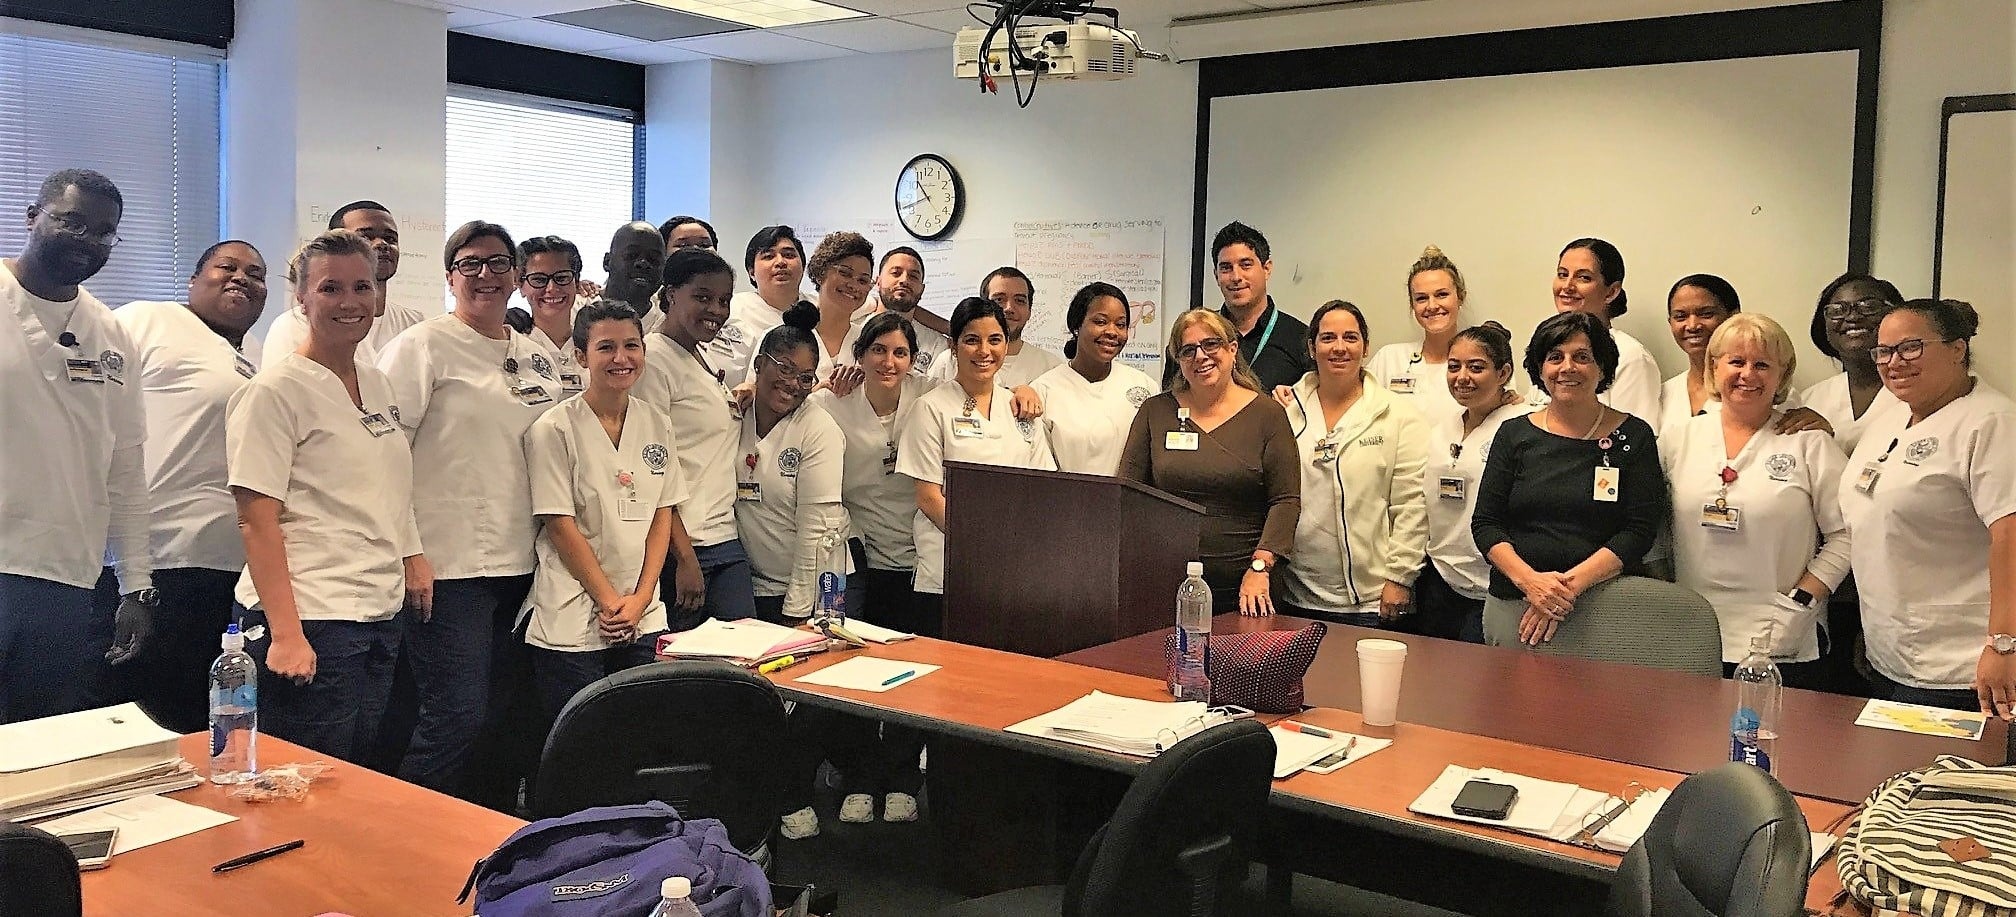 The FL Department of Health Visits the Ft. Lauderdale Campus